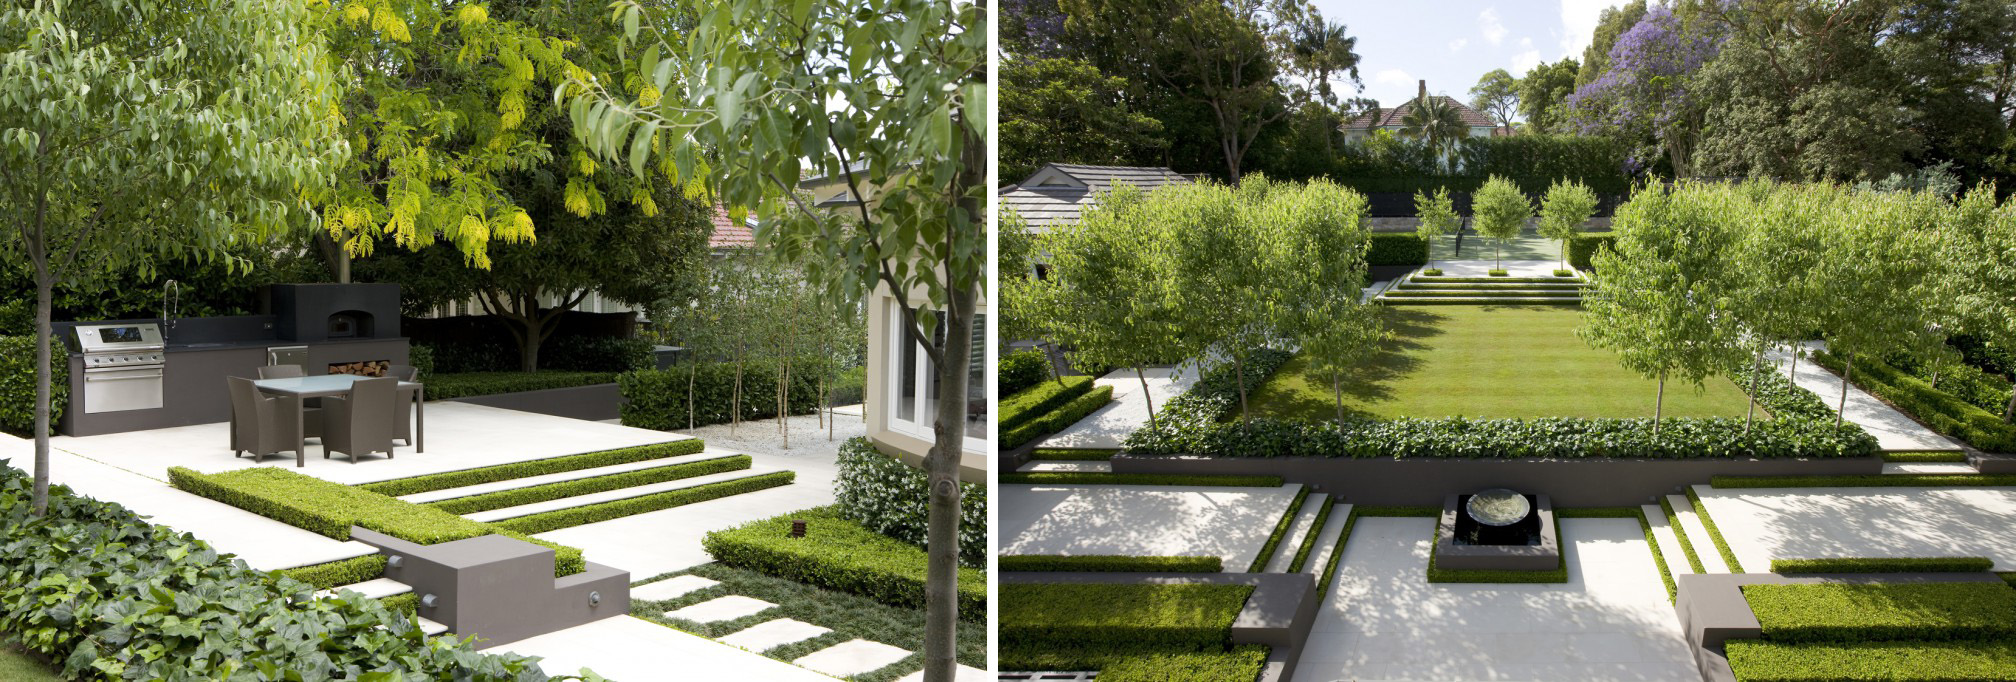 30 Modern German Interior Design Styles Are Here! - The ... |German Contemporary Landscape Architecture